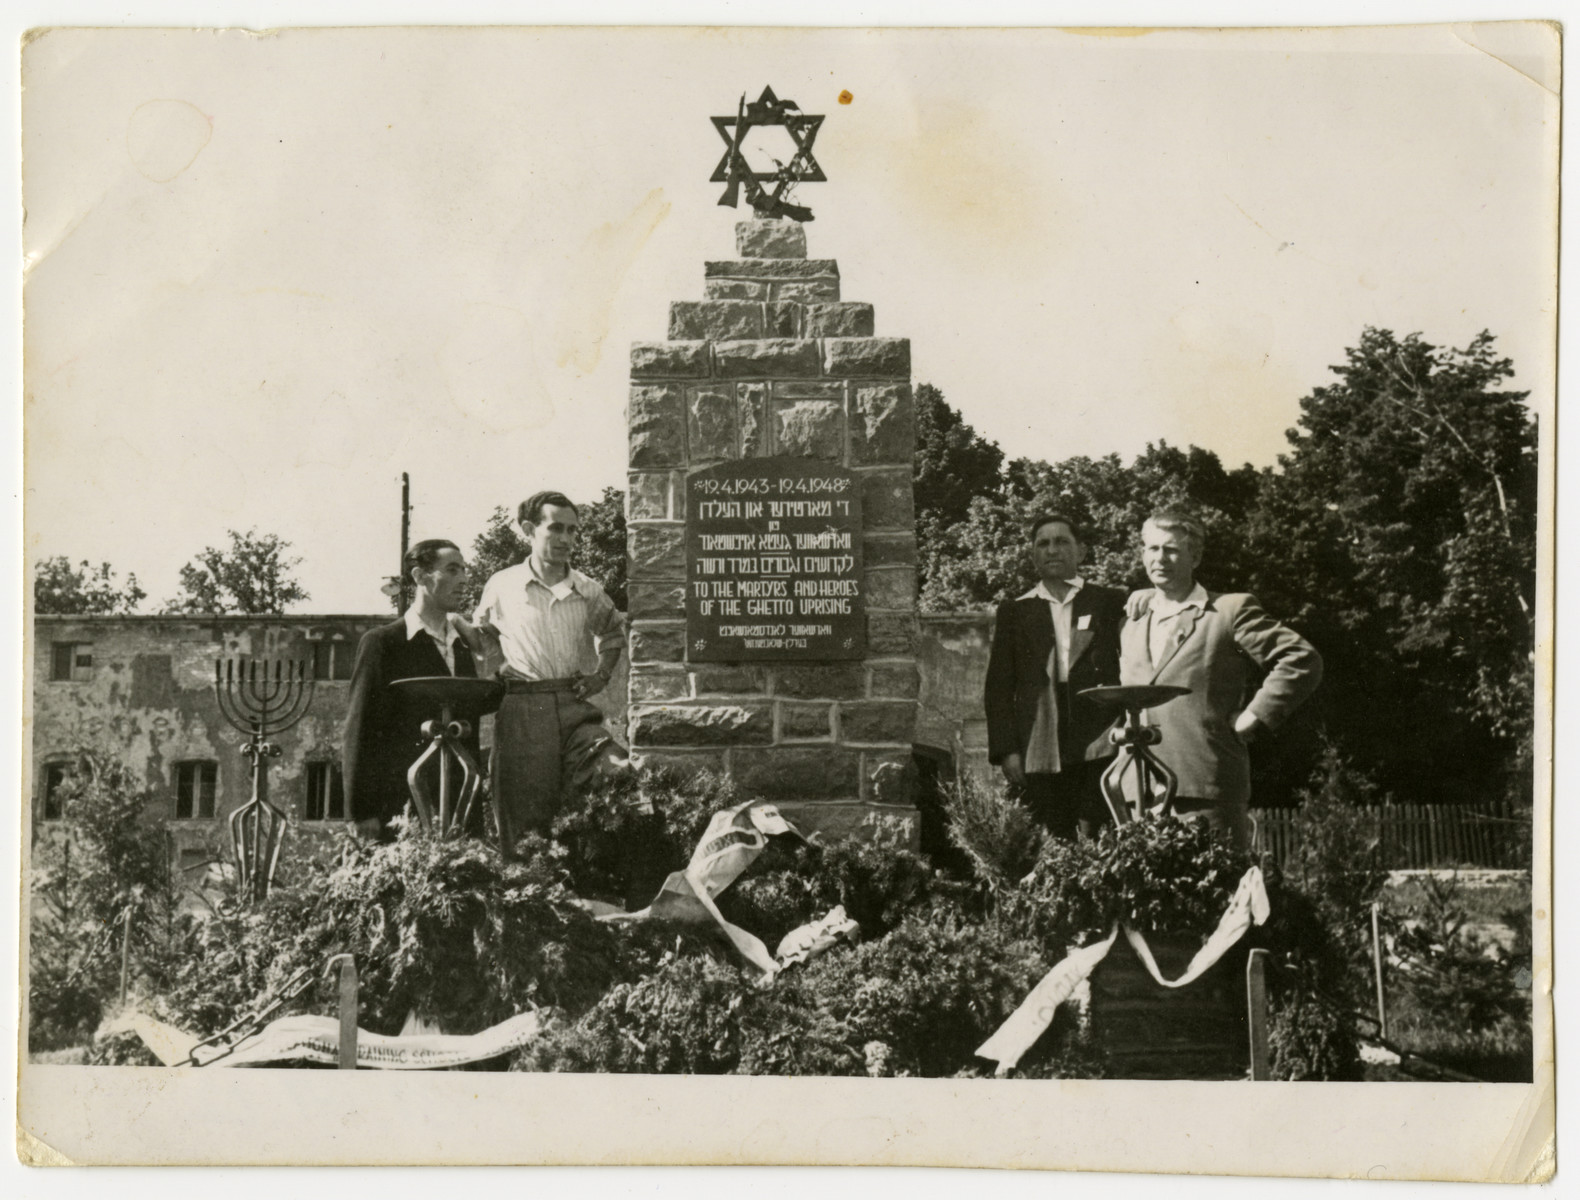 Four men pose next to a memorial marking the fifth anniversary of the Warsaw ghetto uprising probably in the Schlachtensee displaced persons camp.